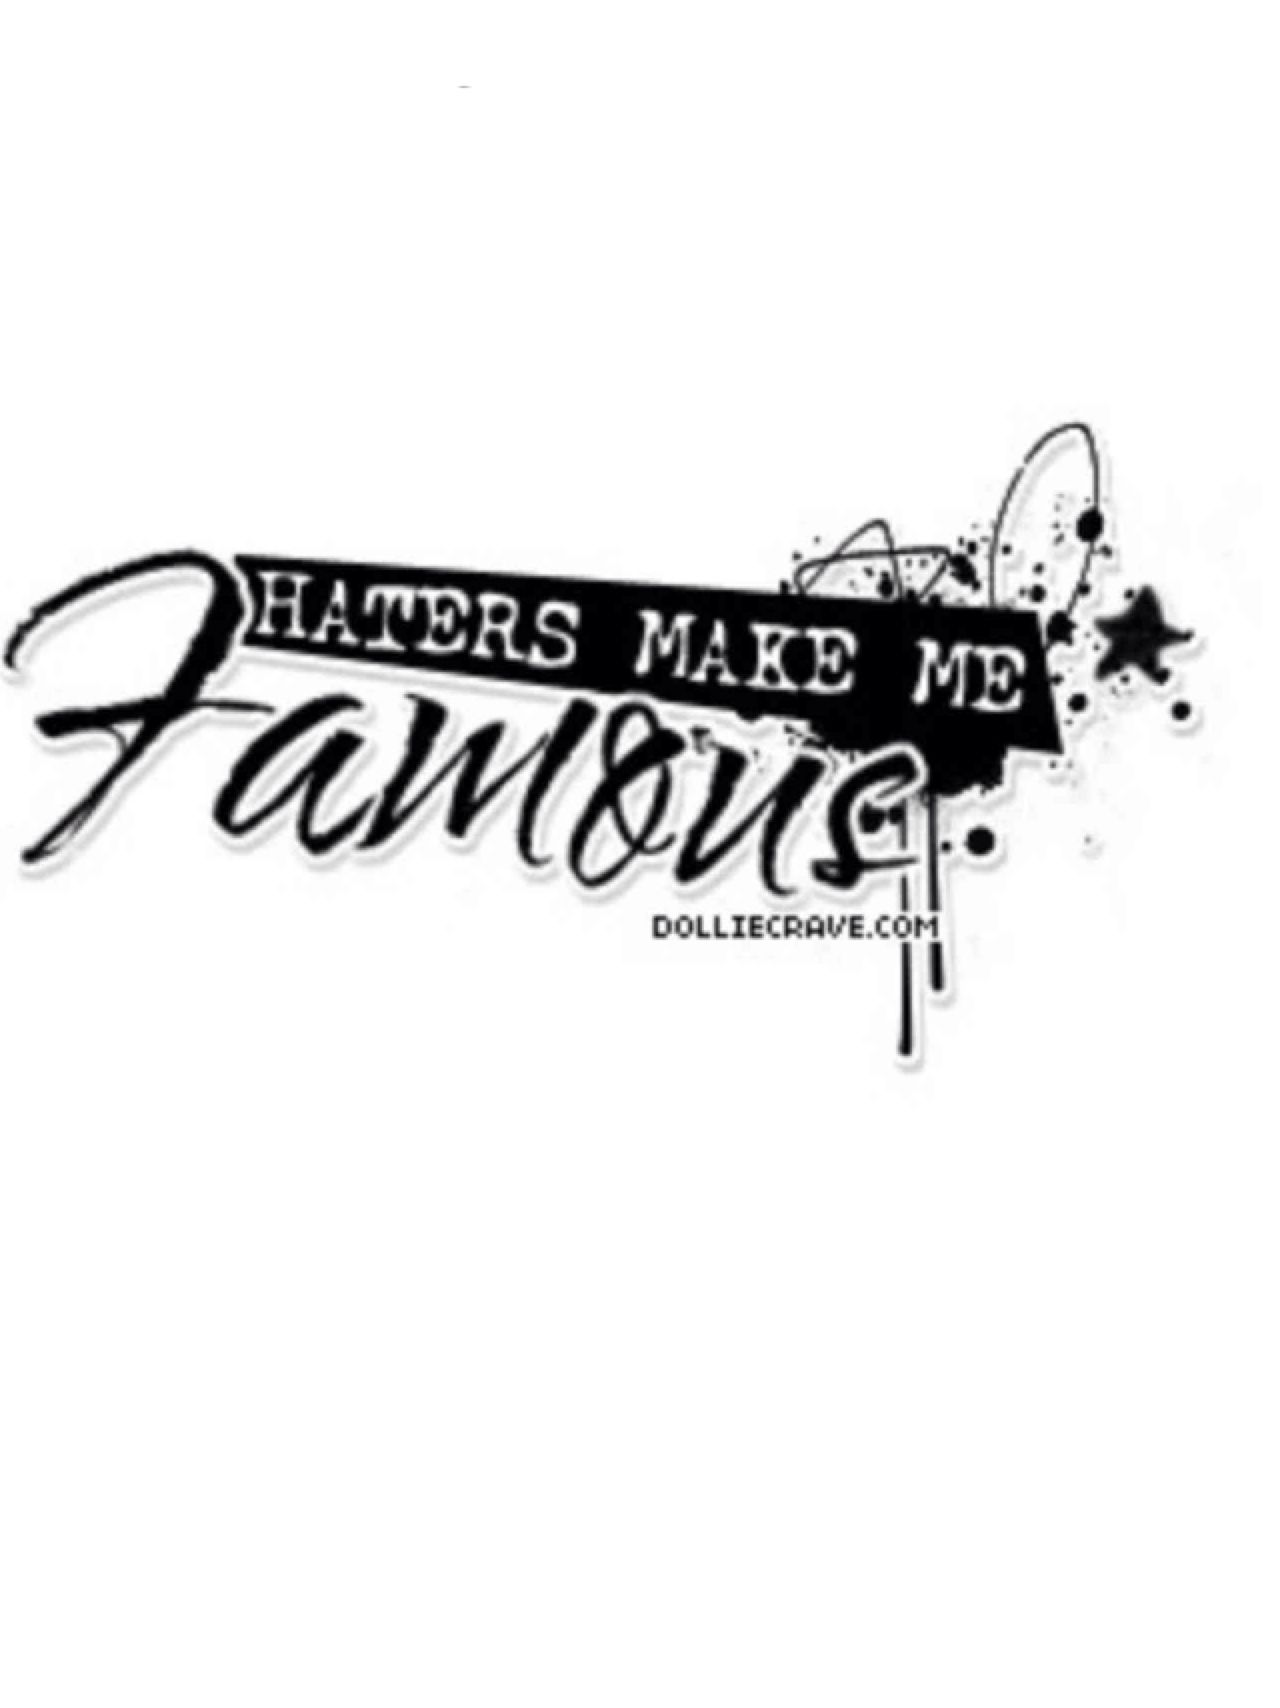 Haters make me famous.